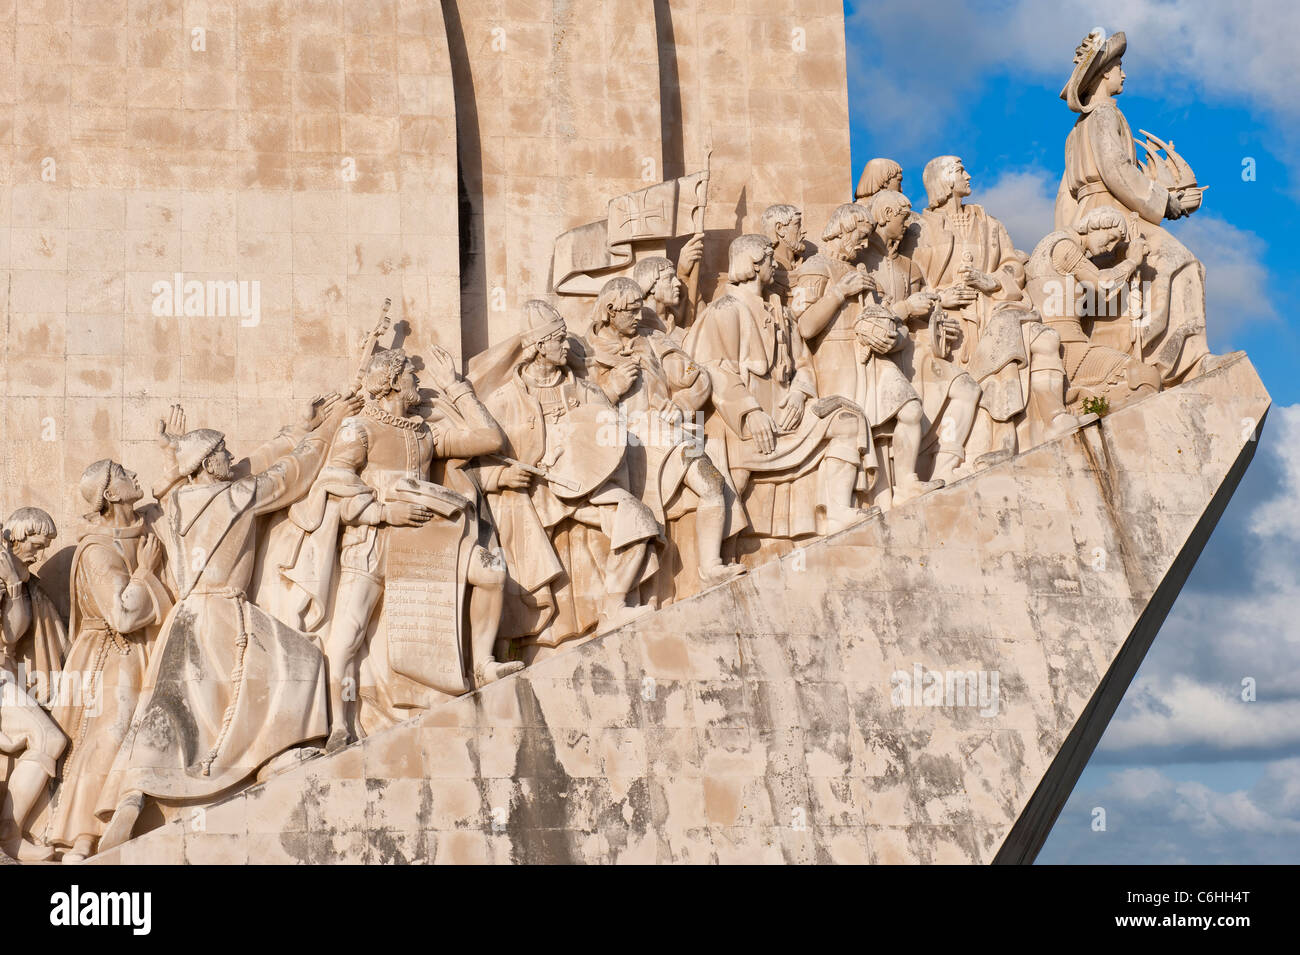 Monument to the Discoveries, Belem district, Lisbon, Portugal Stock Photo